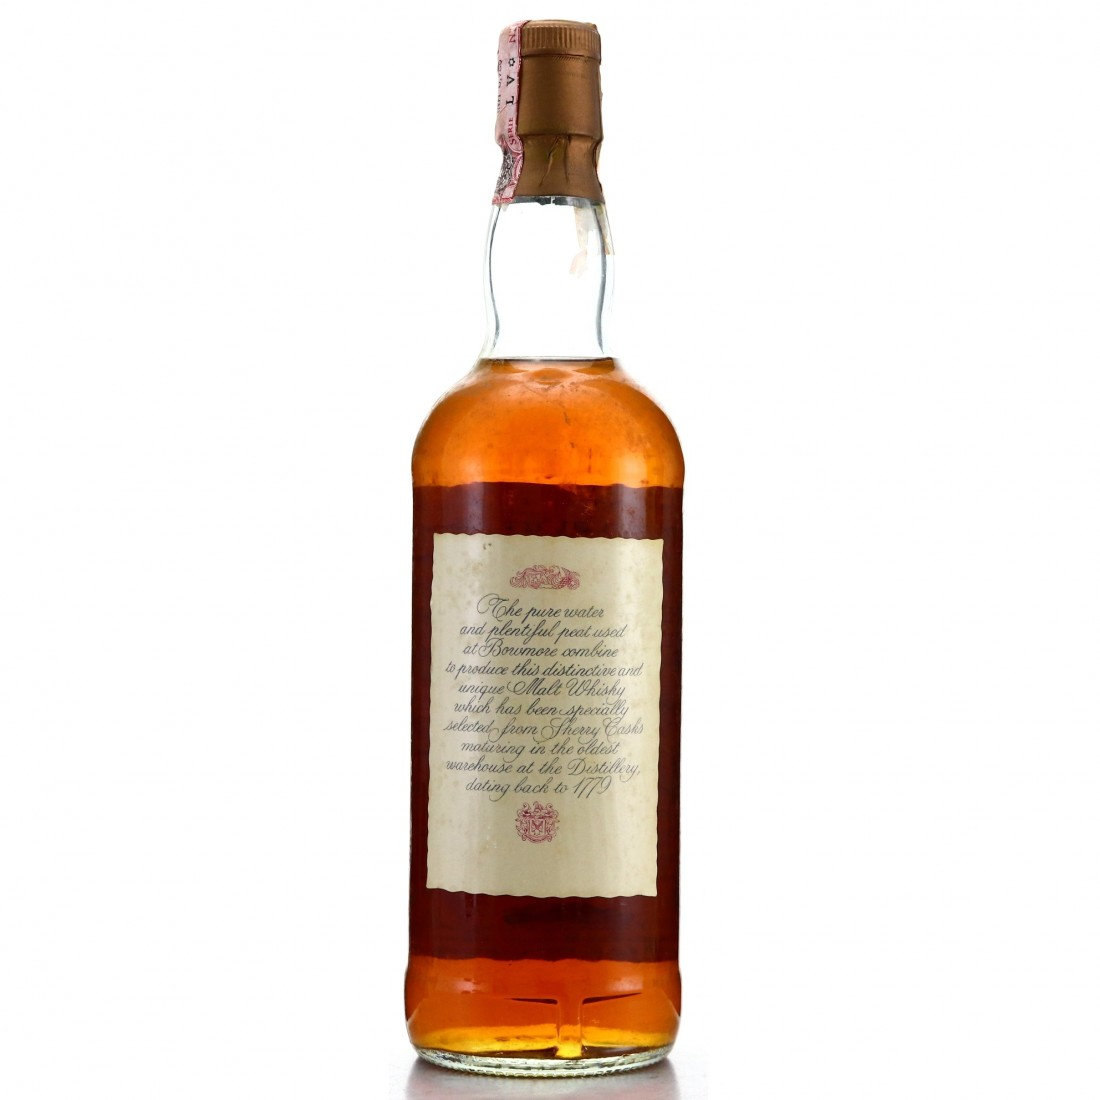 Bowmore 1967 Sherry Casks Full Strength / Soffiantino Import